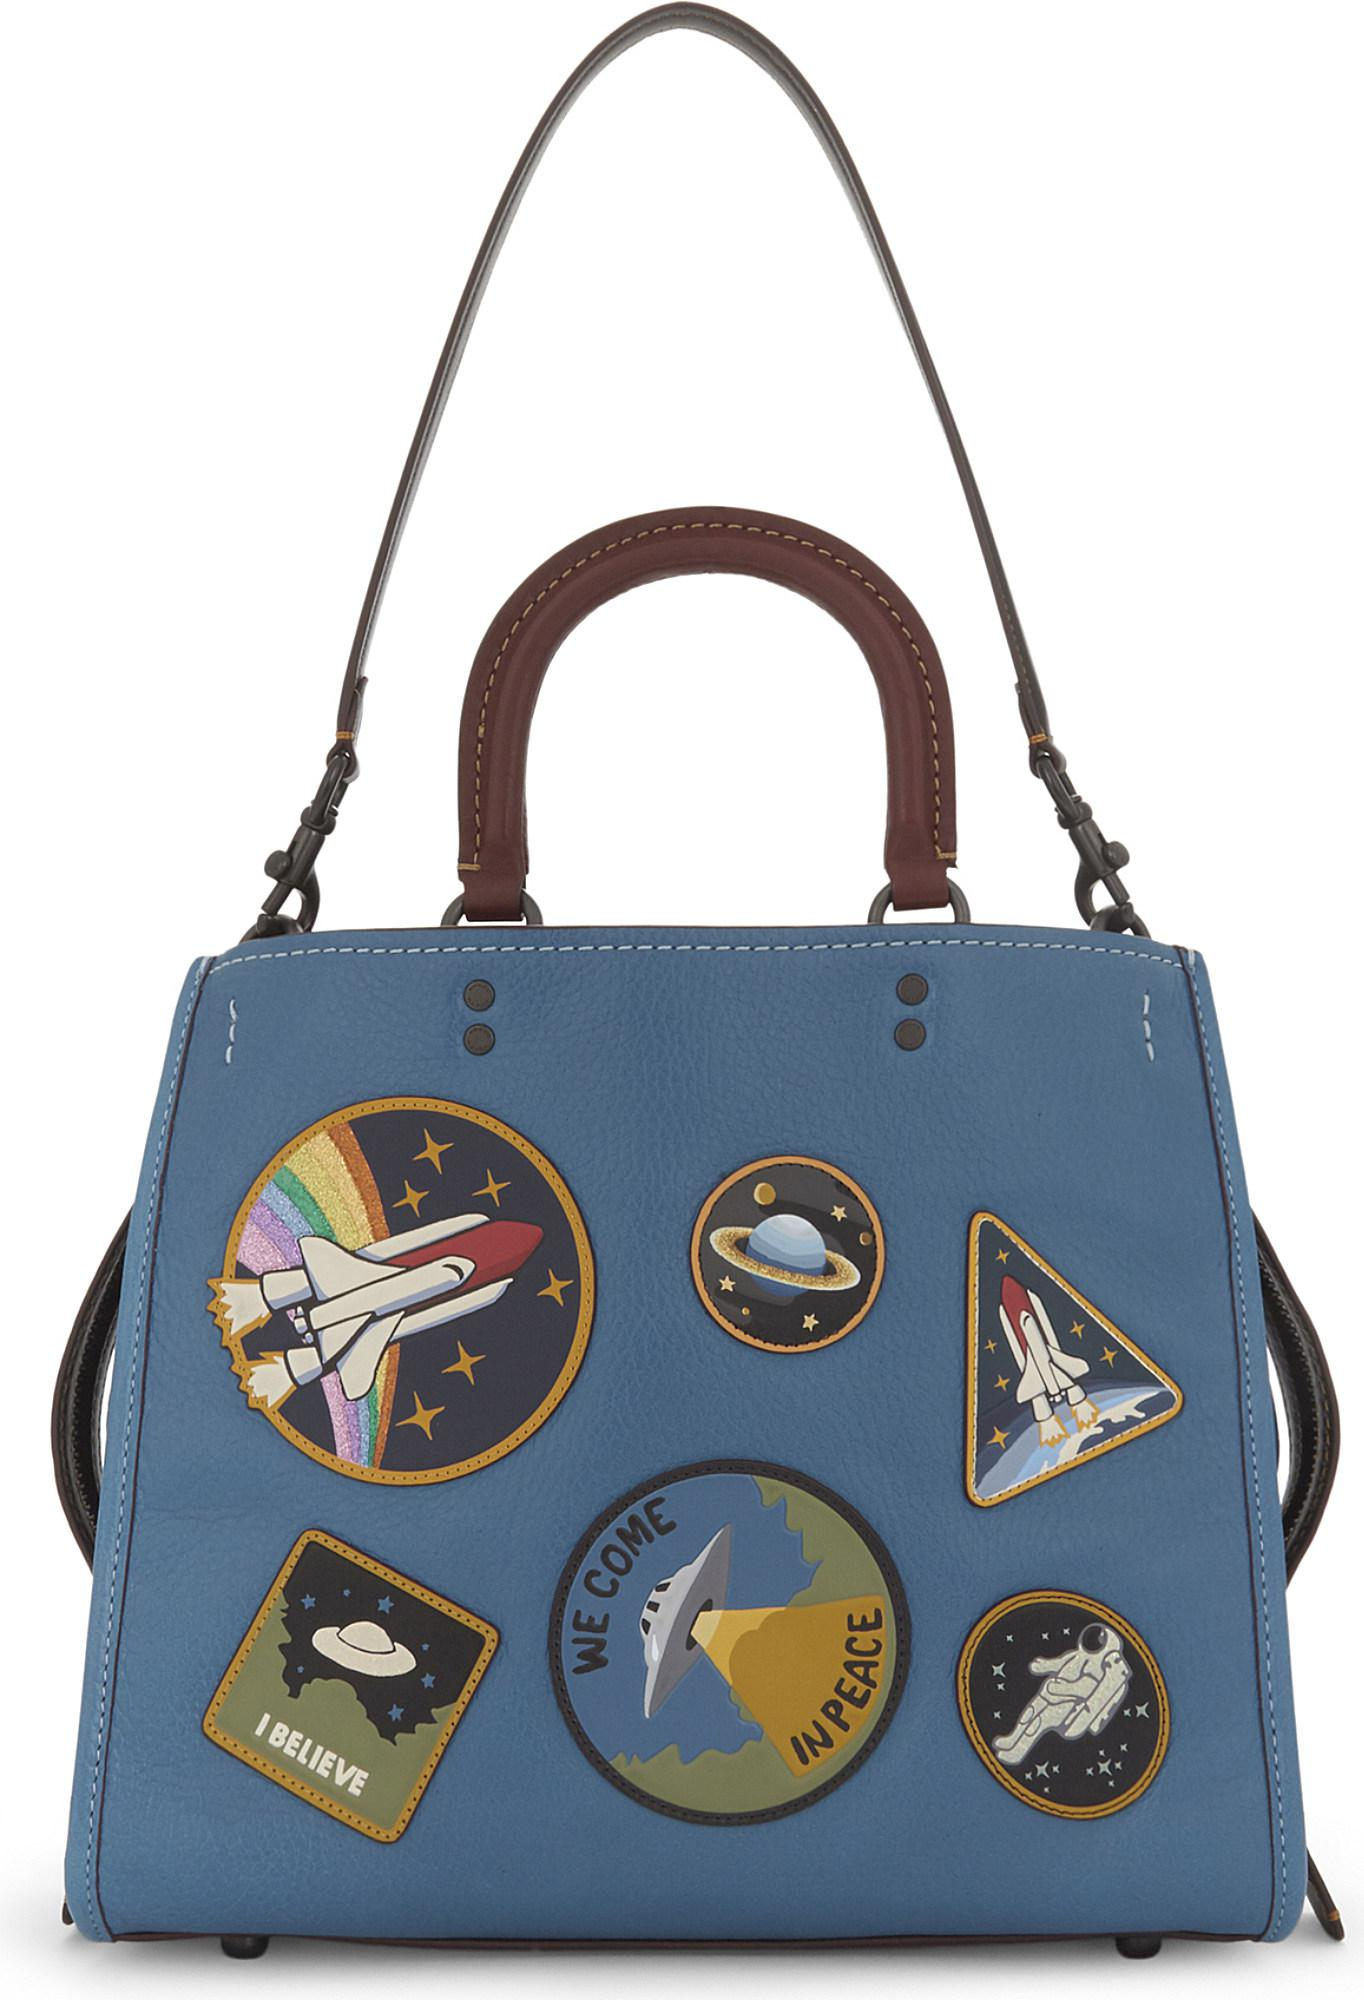 0a4fbc720da Coach Rogue Space Patches Leather Tote in Blue - Lyst